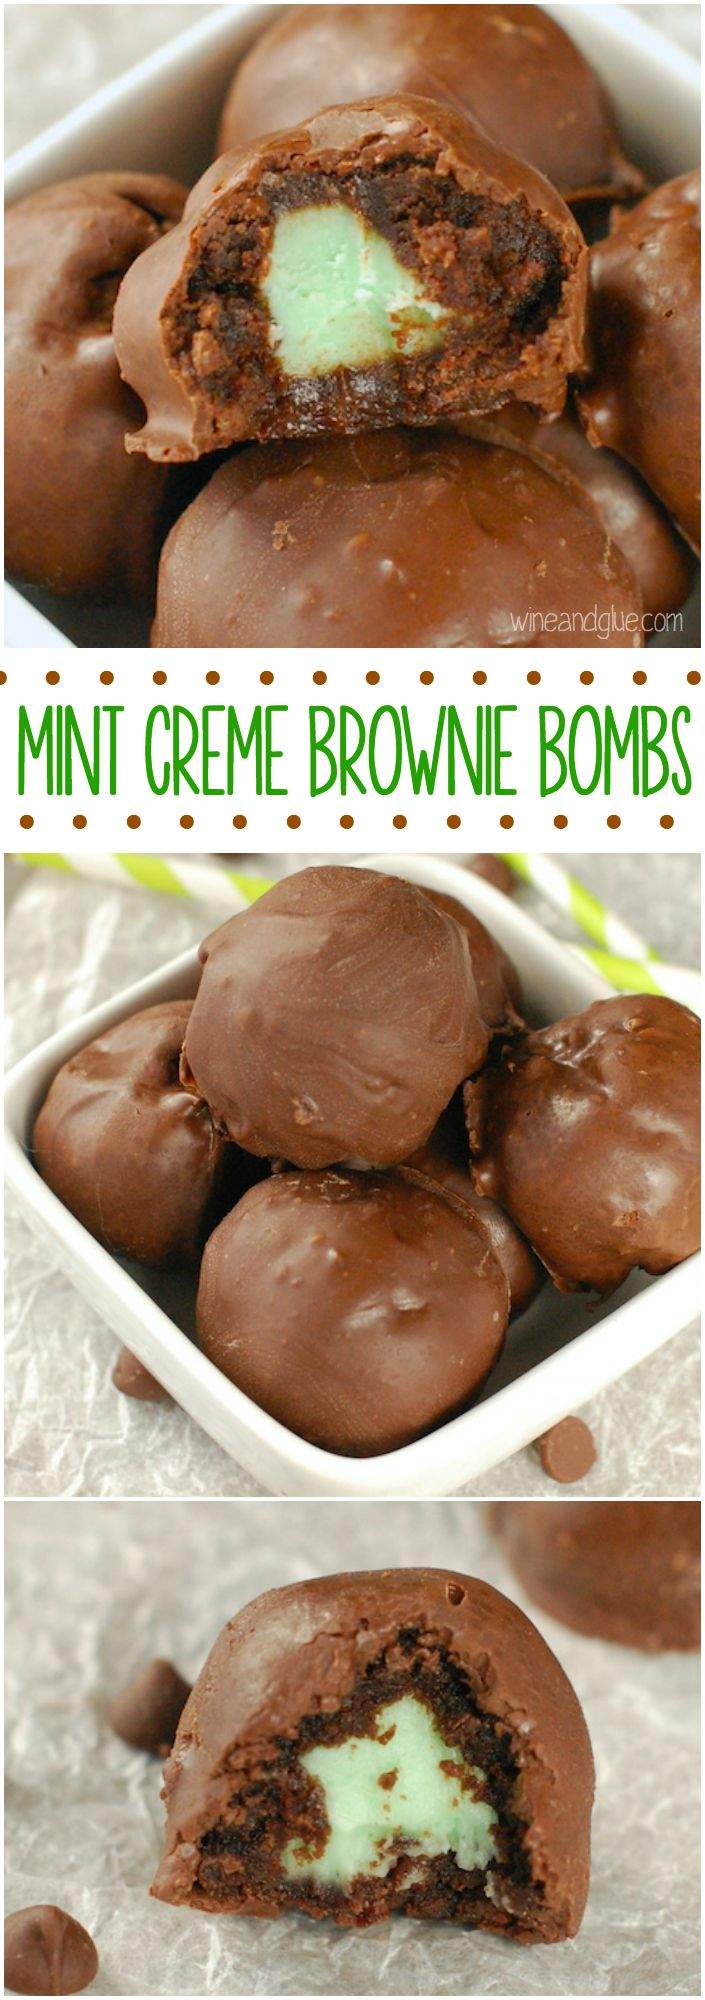 Mint Creme Brownie Bombs | Irresistible brownie truffles filled with mint creme!